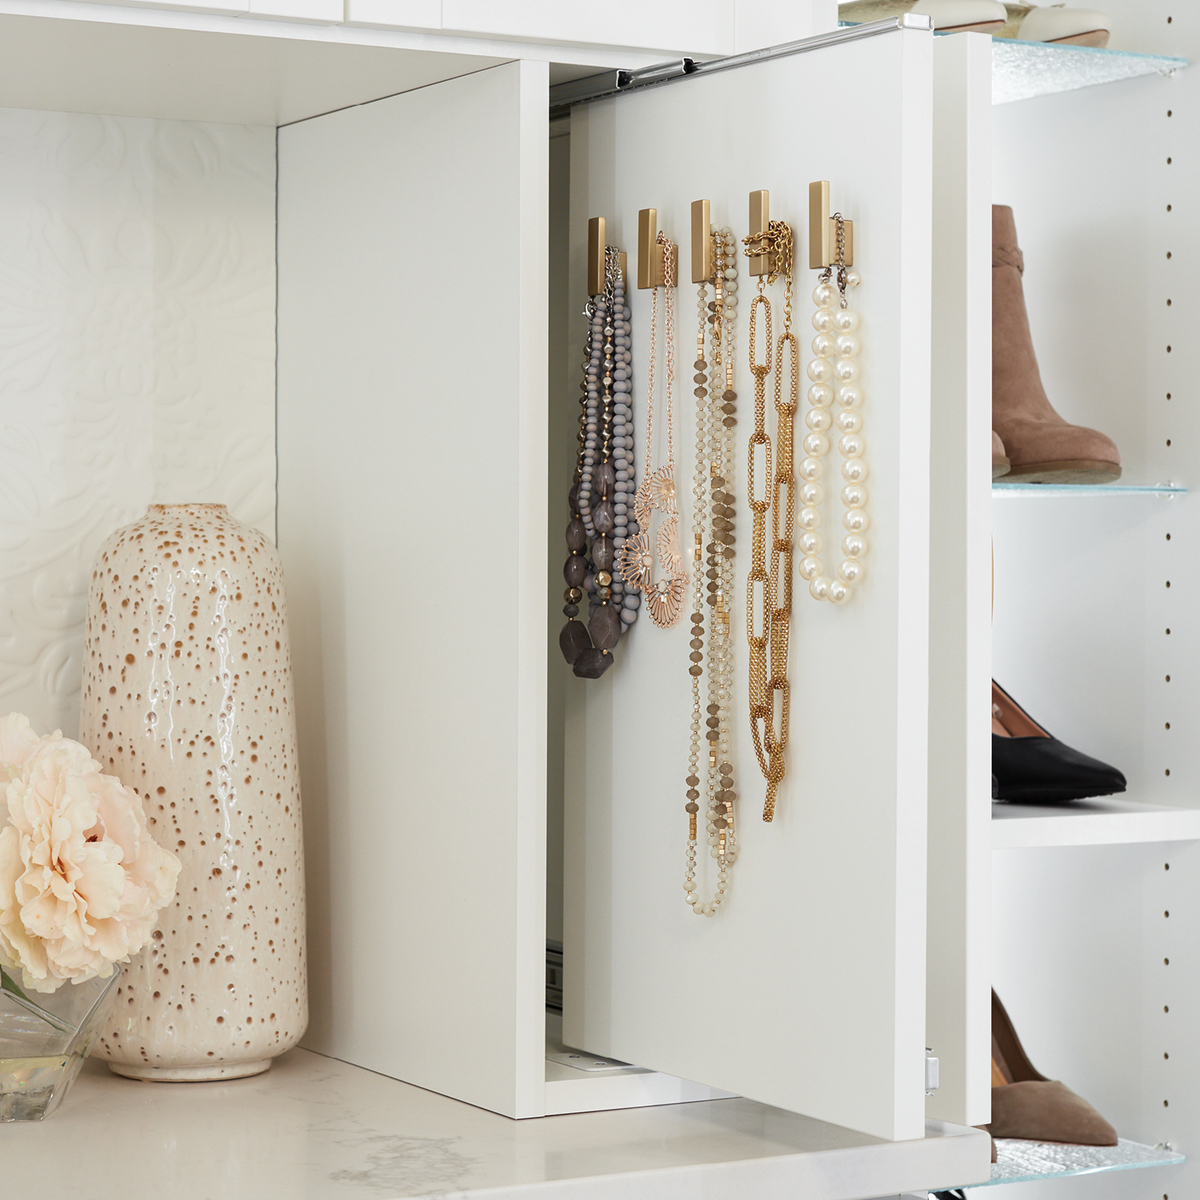 Hideaway jewelry solutions from Inspired Closets